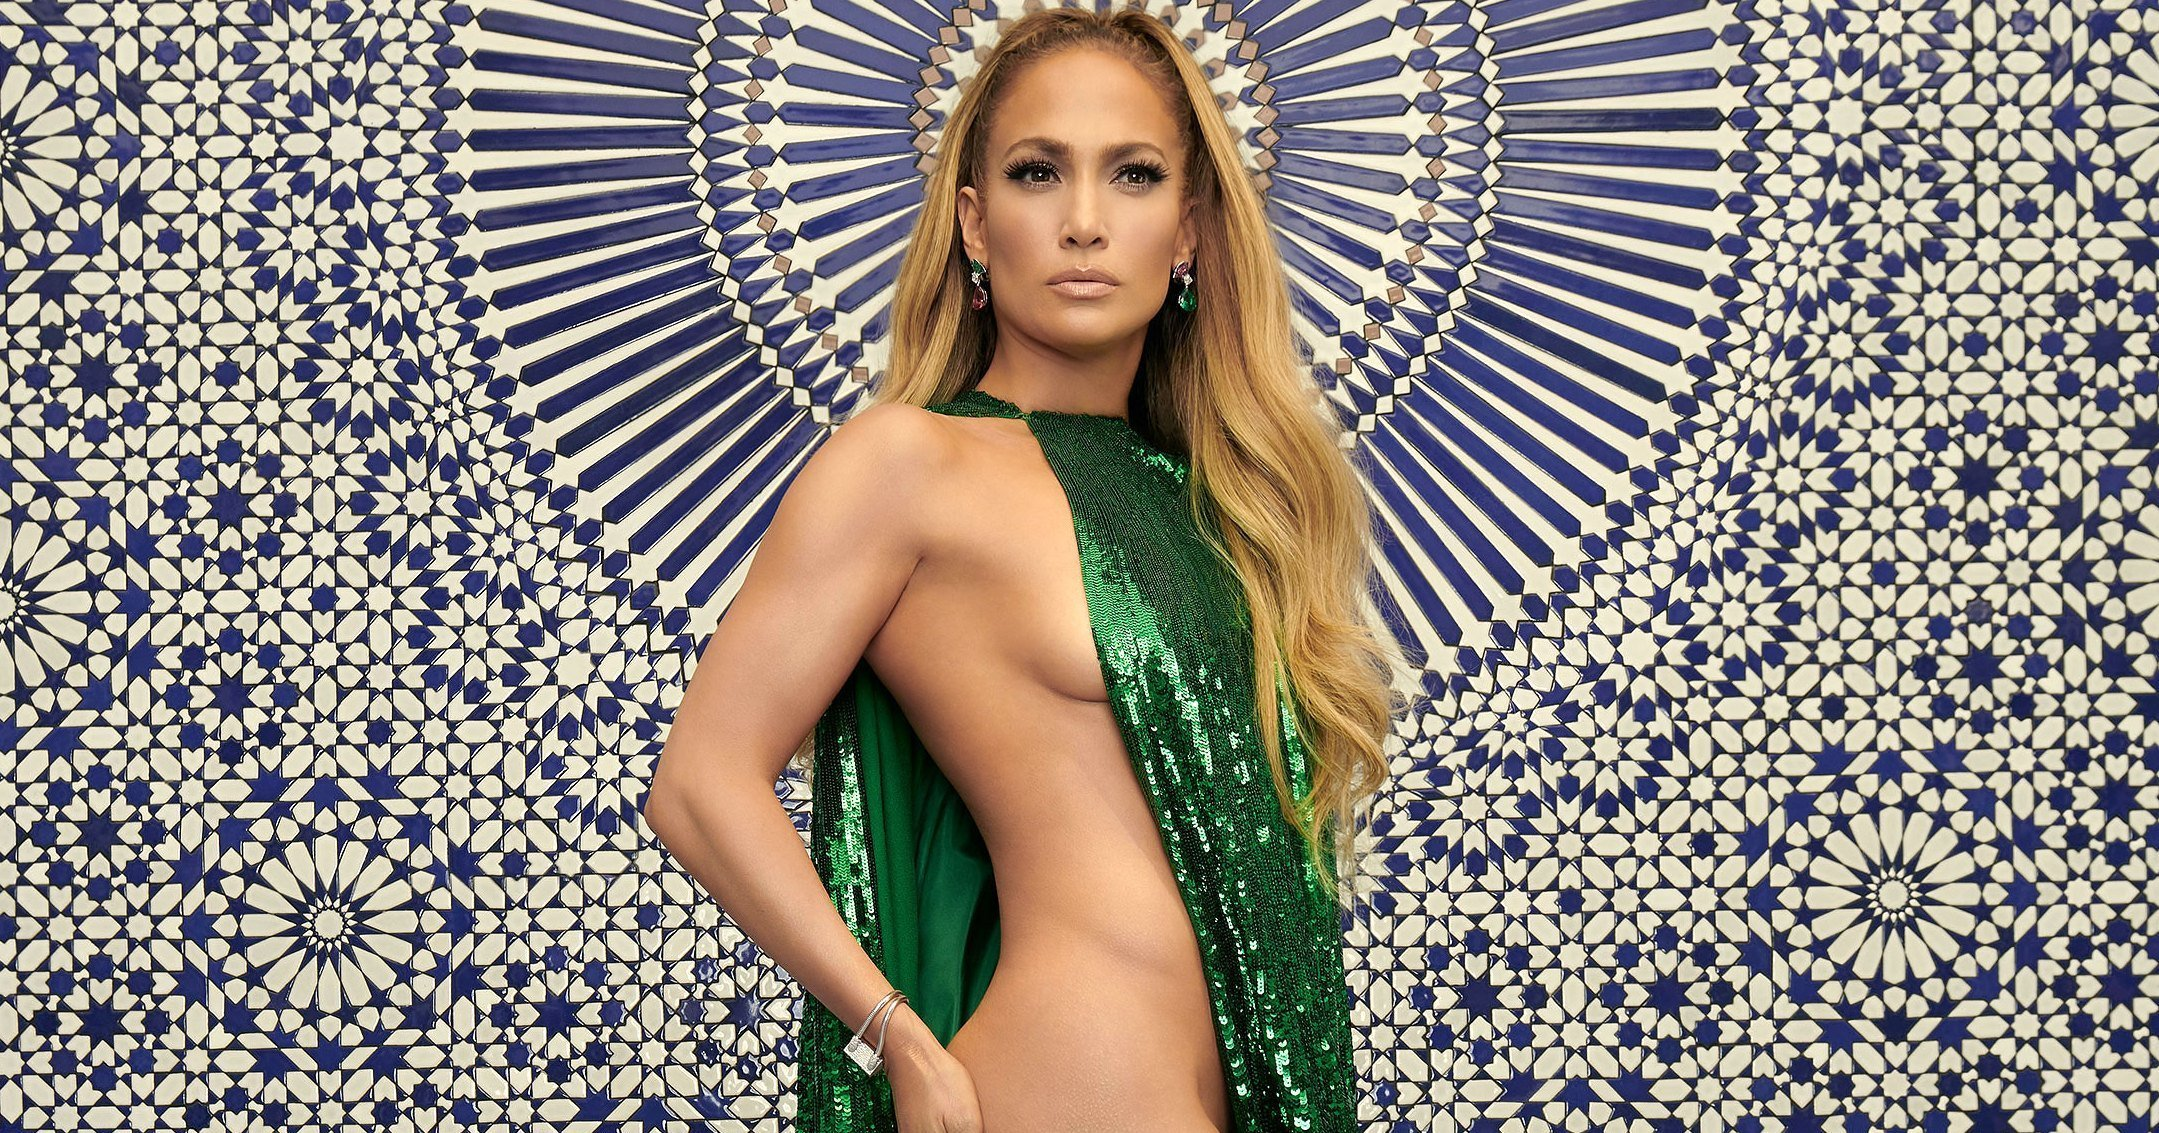 Jennifer lopez fly girl video 9